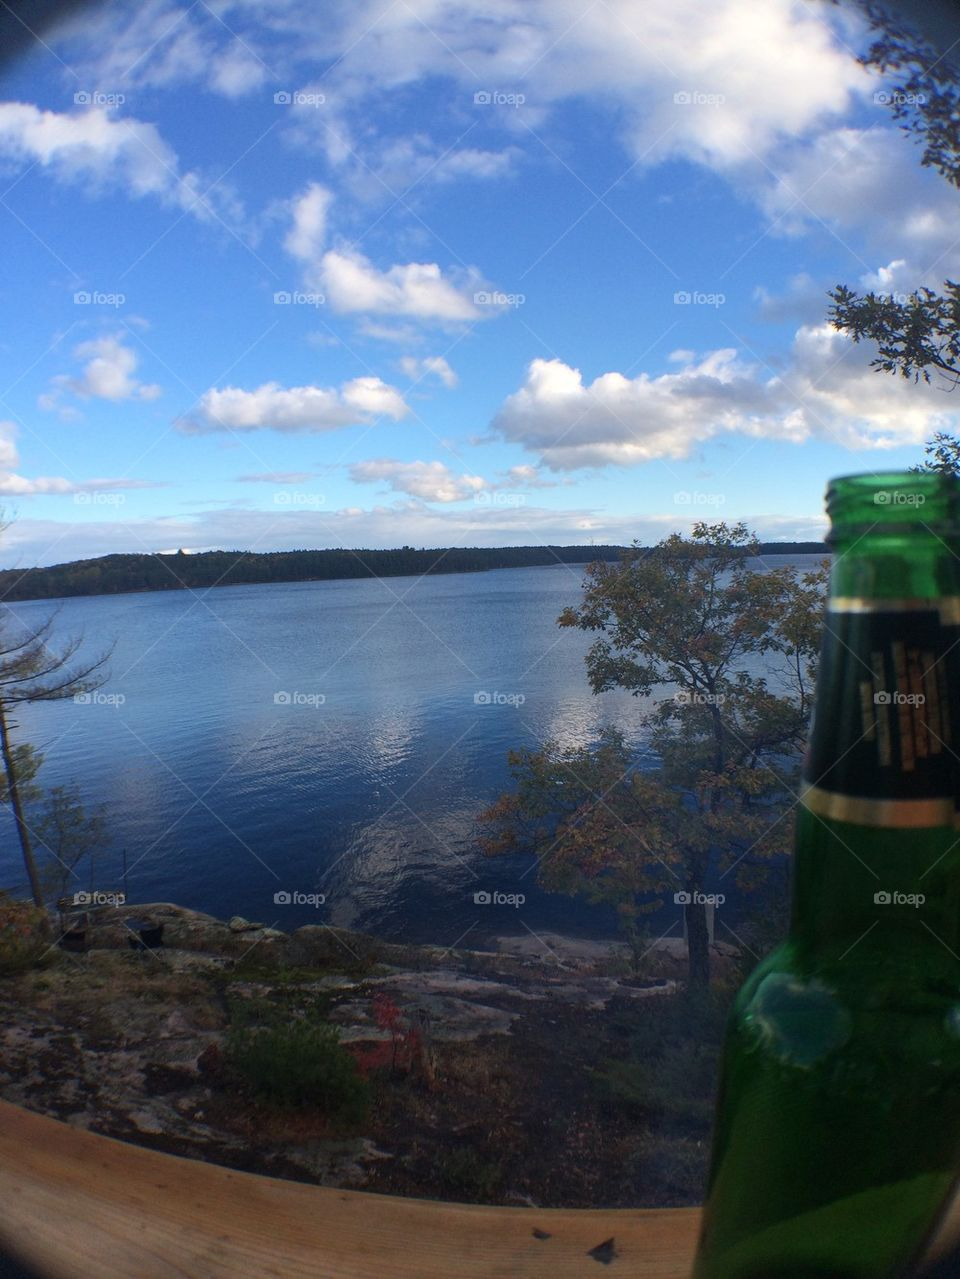 A beer bottle's view